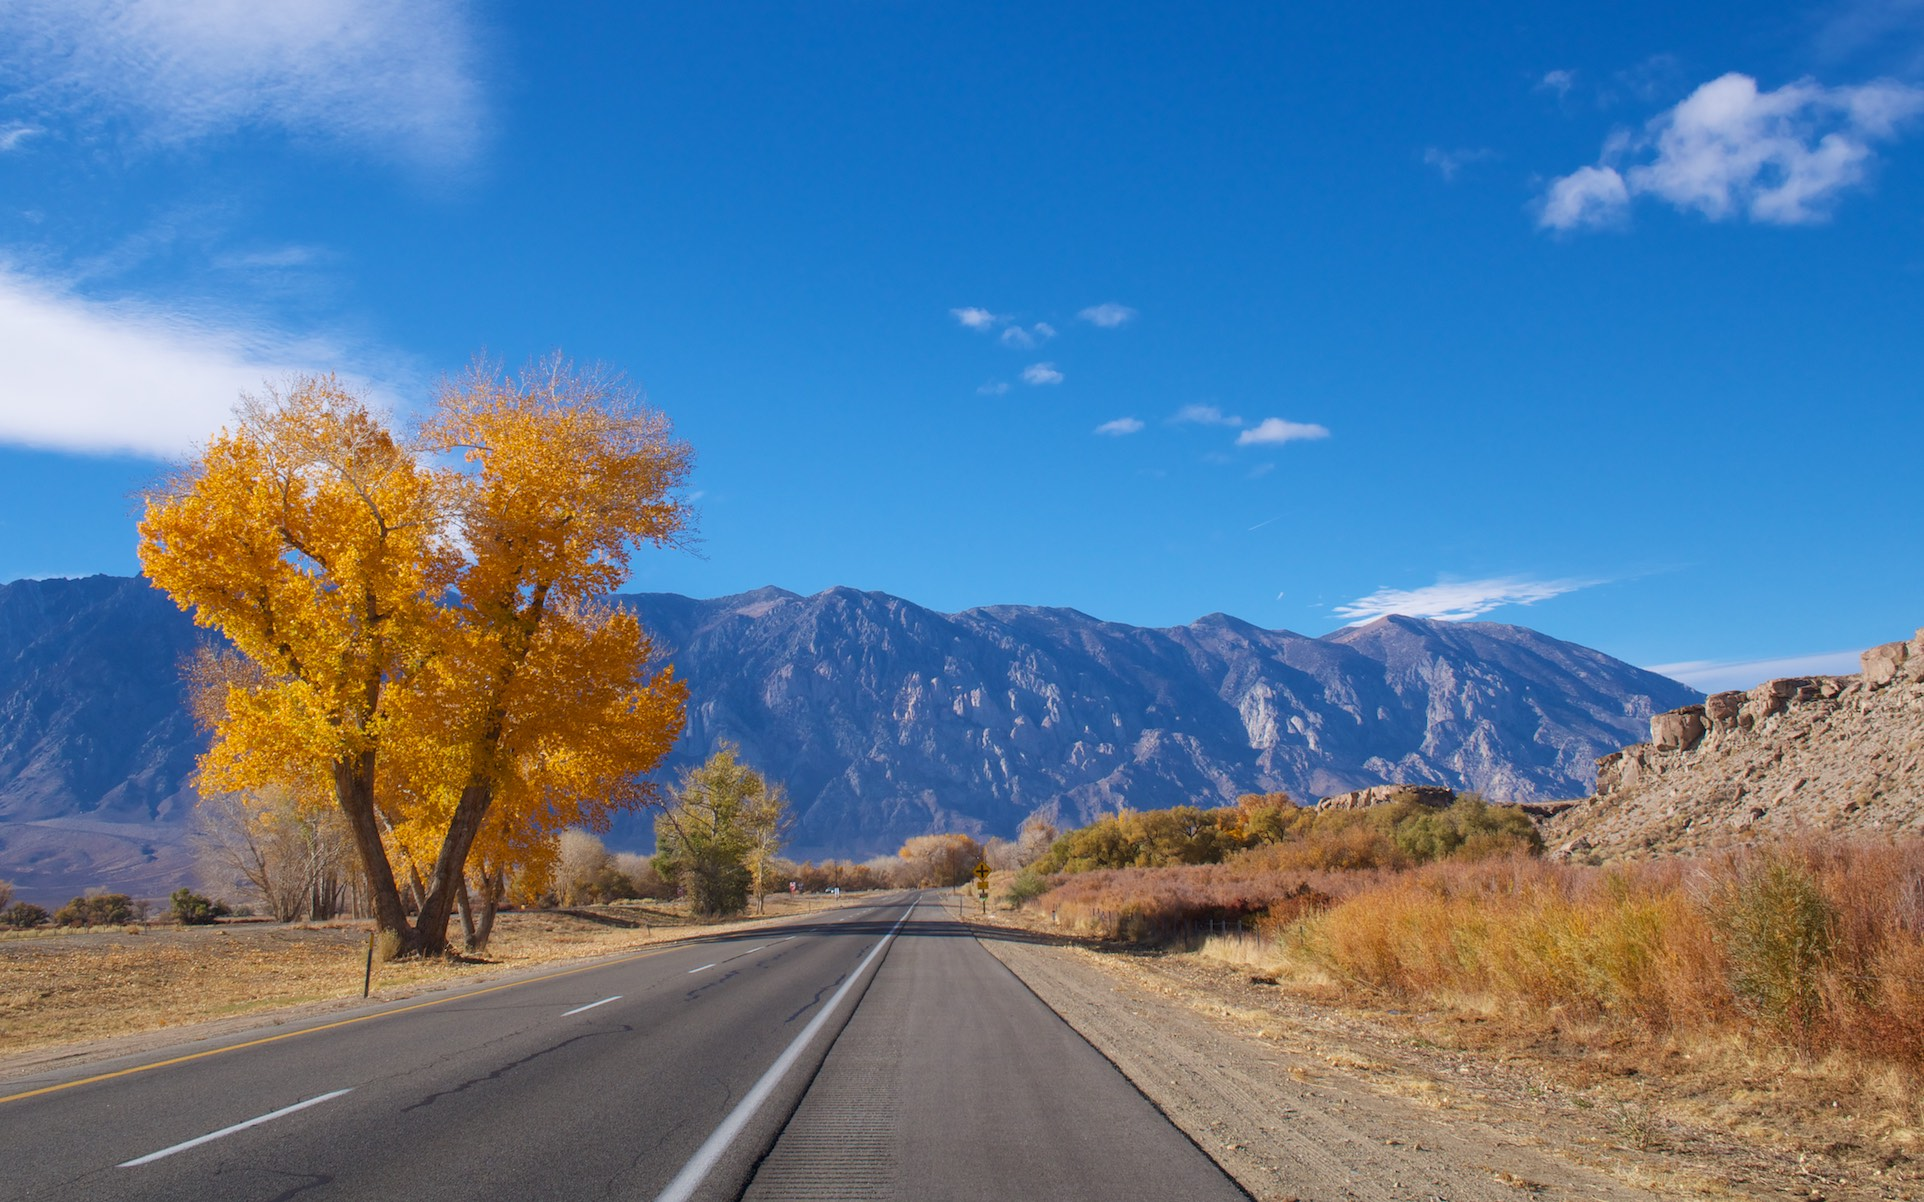 A brightly coloured tree stands by the side of a road leading to distant mountains